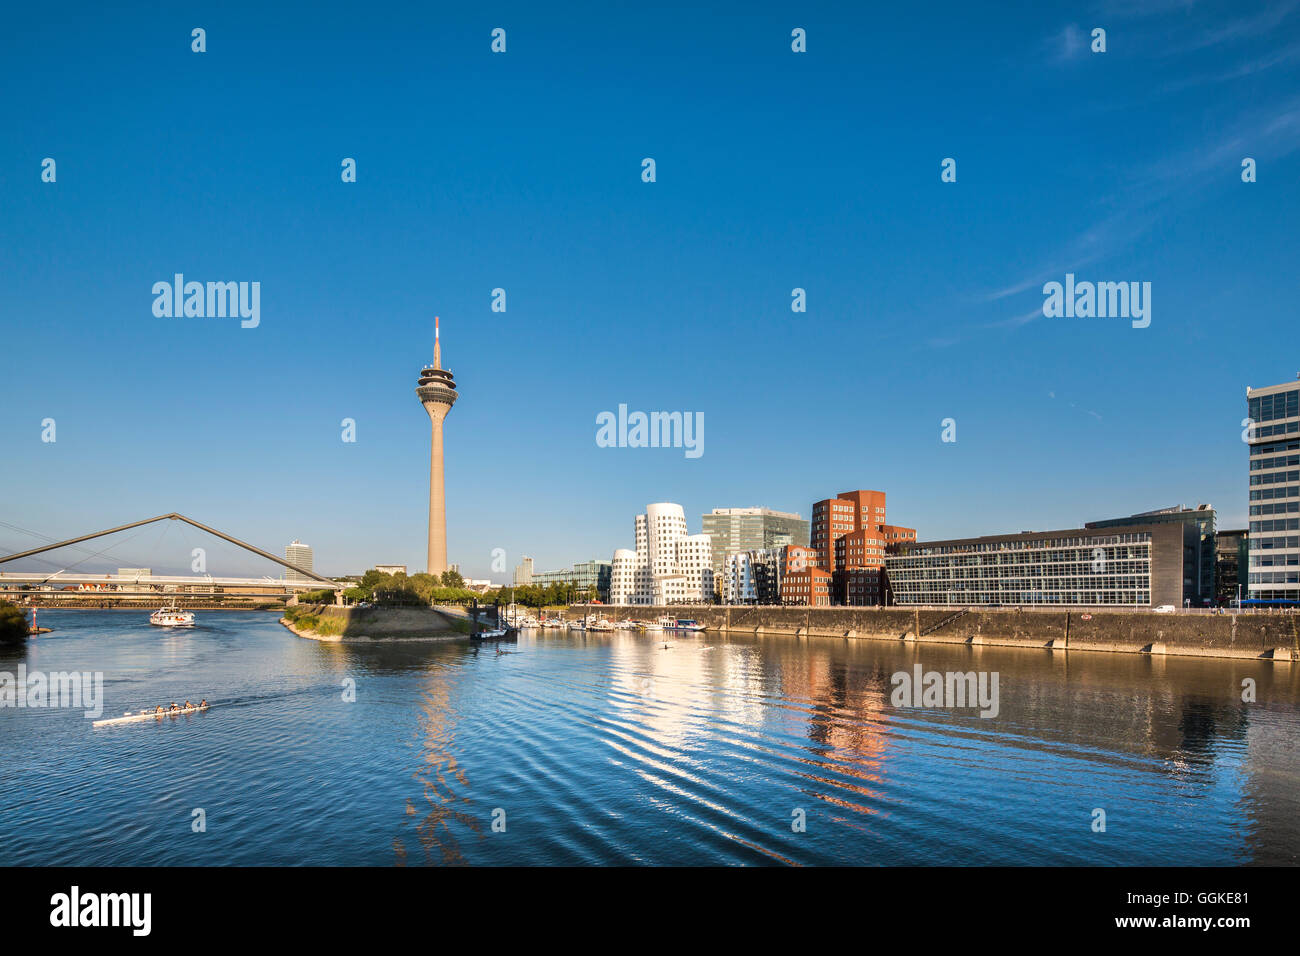 Frank Gehry buildings and television tower, Neuer Zollhof, Media harbour, Duesseldorf, North Rhine Westphalia, Germany - Stock Image